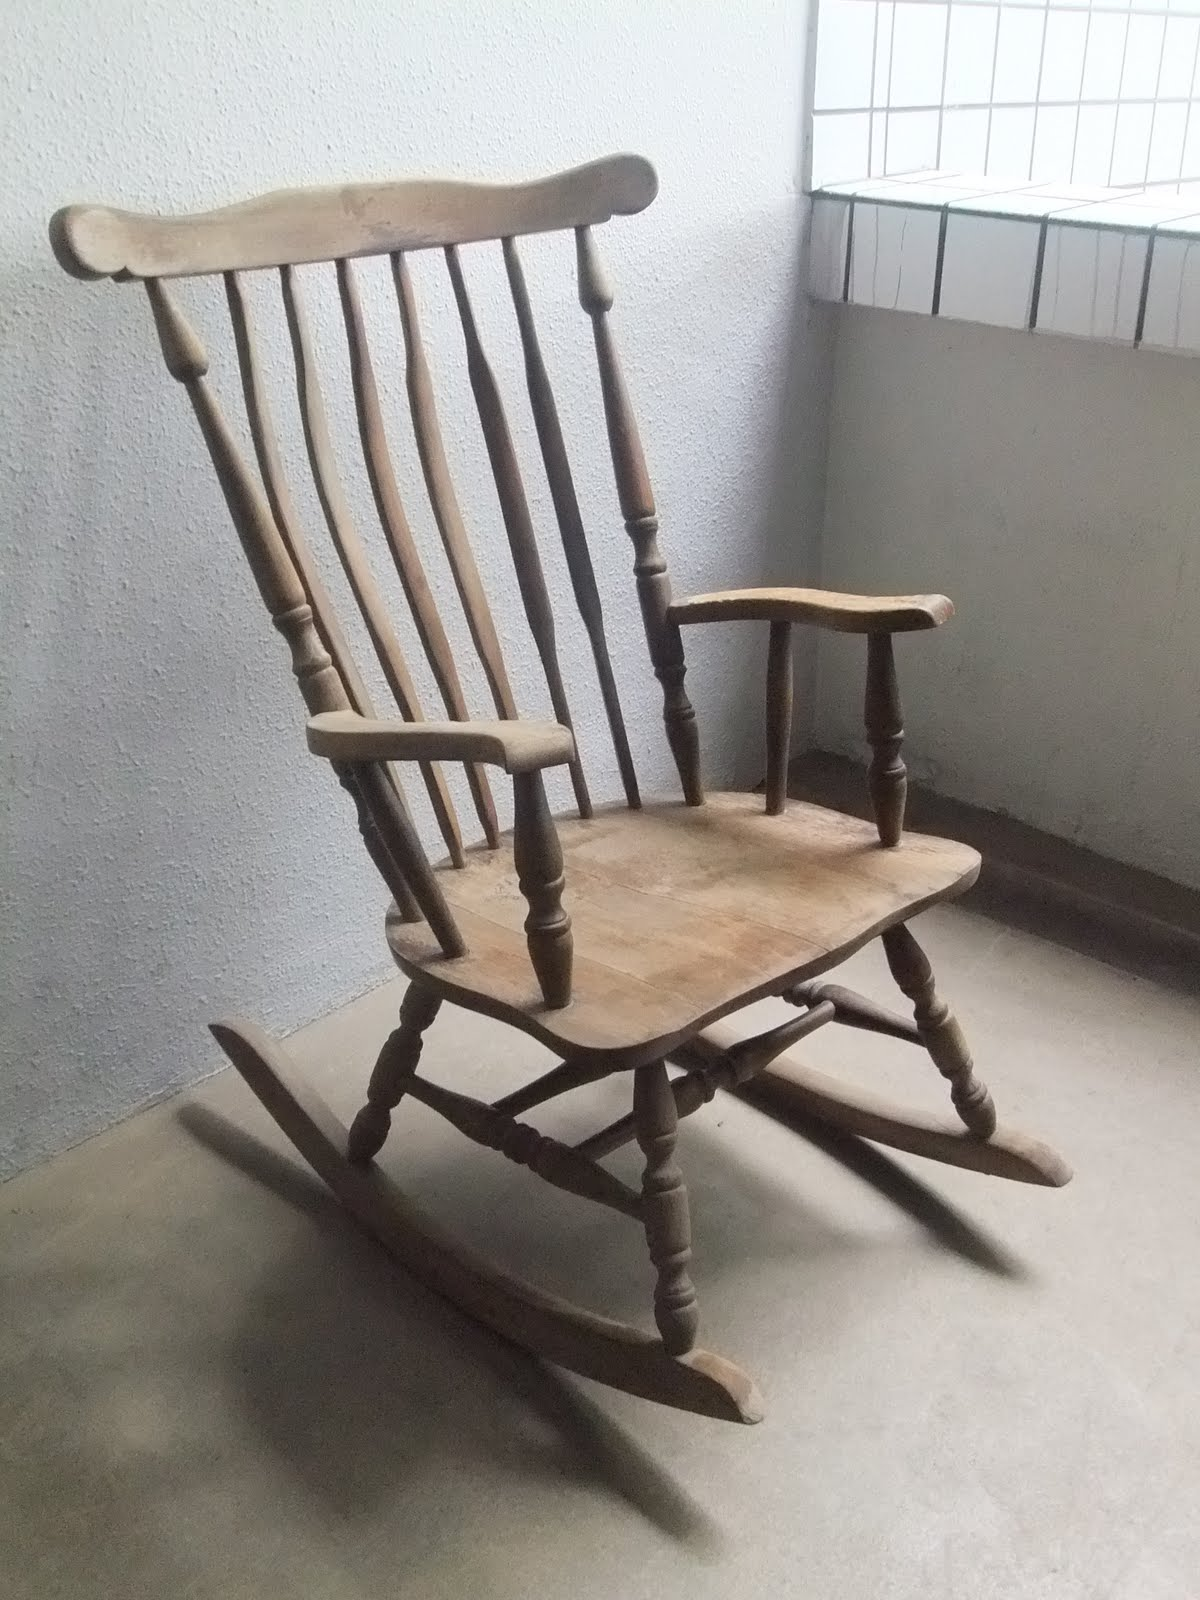 Wooden Rocking Chairs ~ Second charm vintage furniture at a great